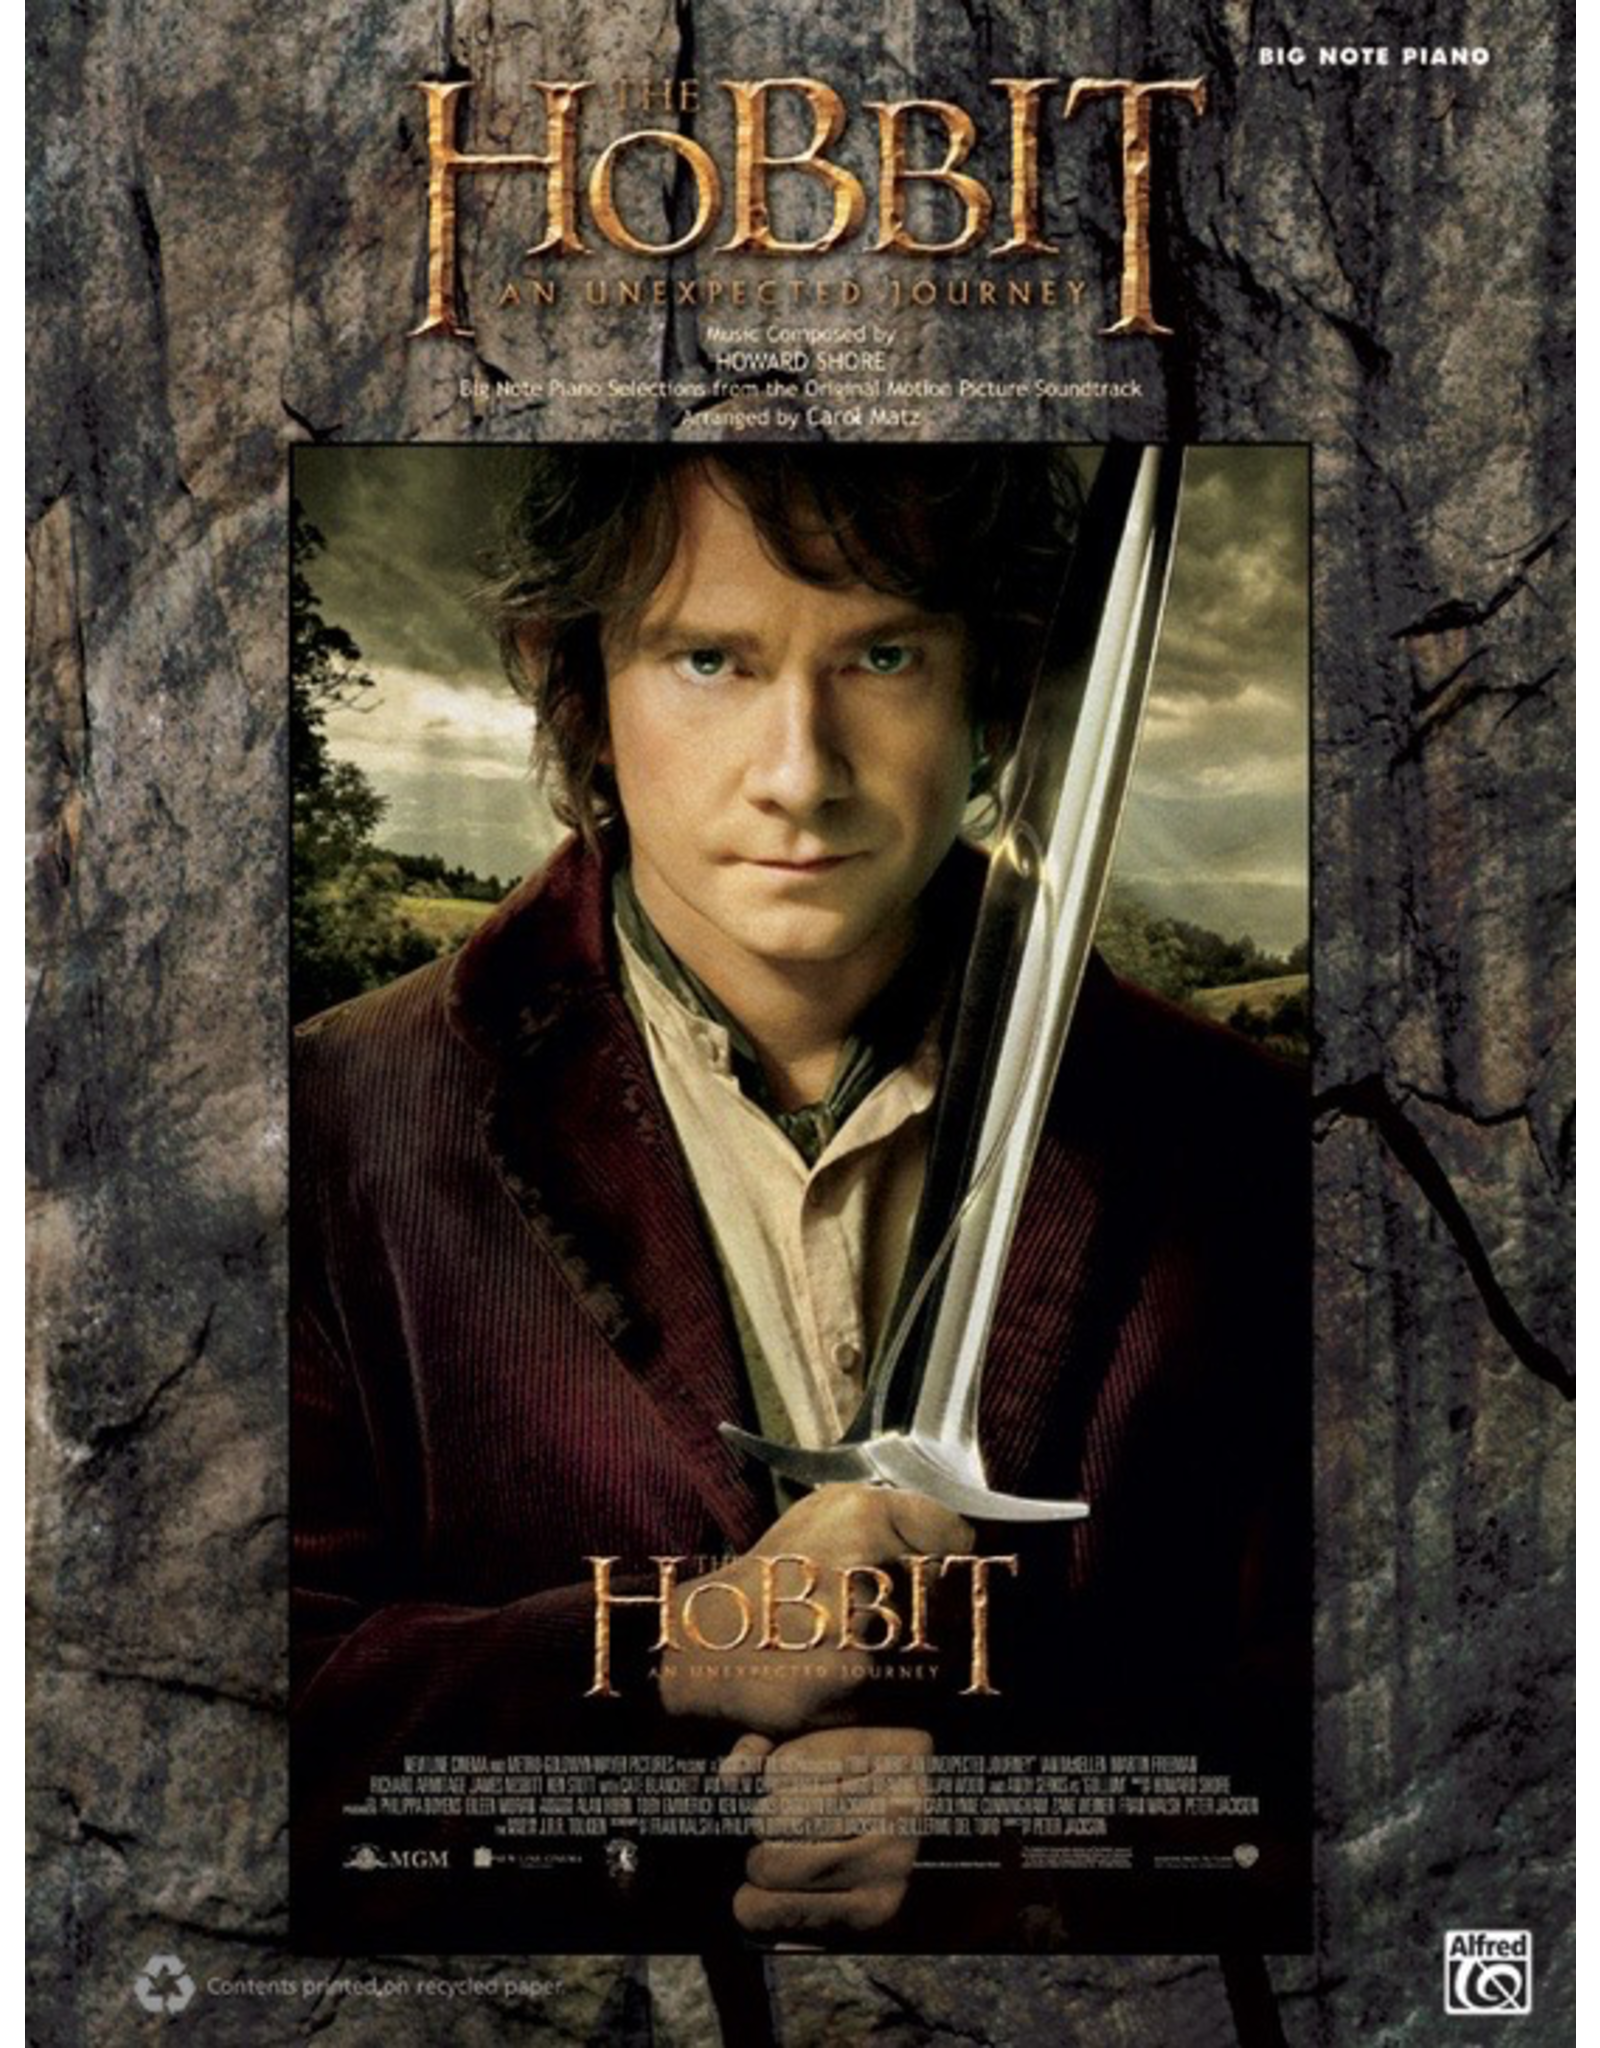 Alfred Hobbit: An Unexpected Journey Big Note